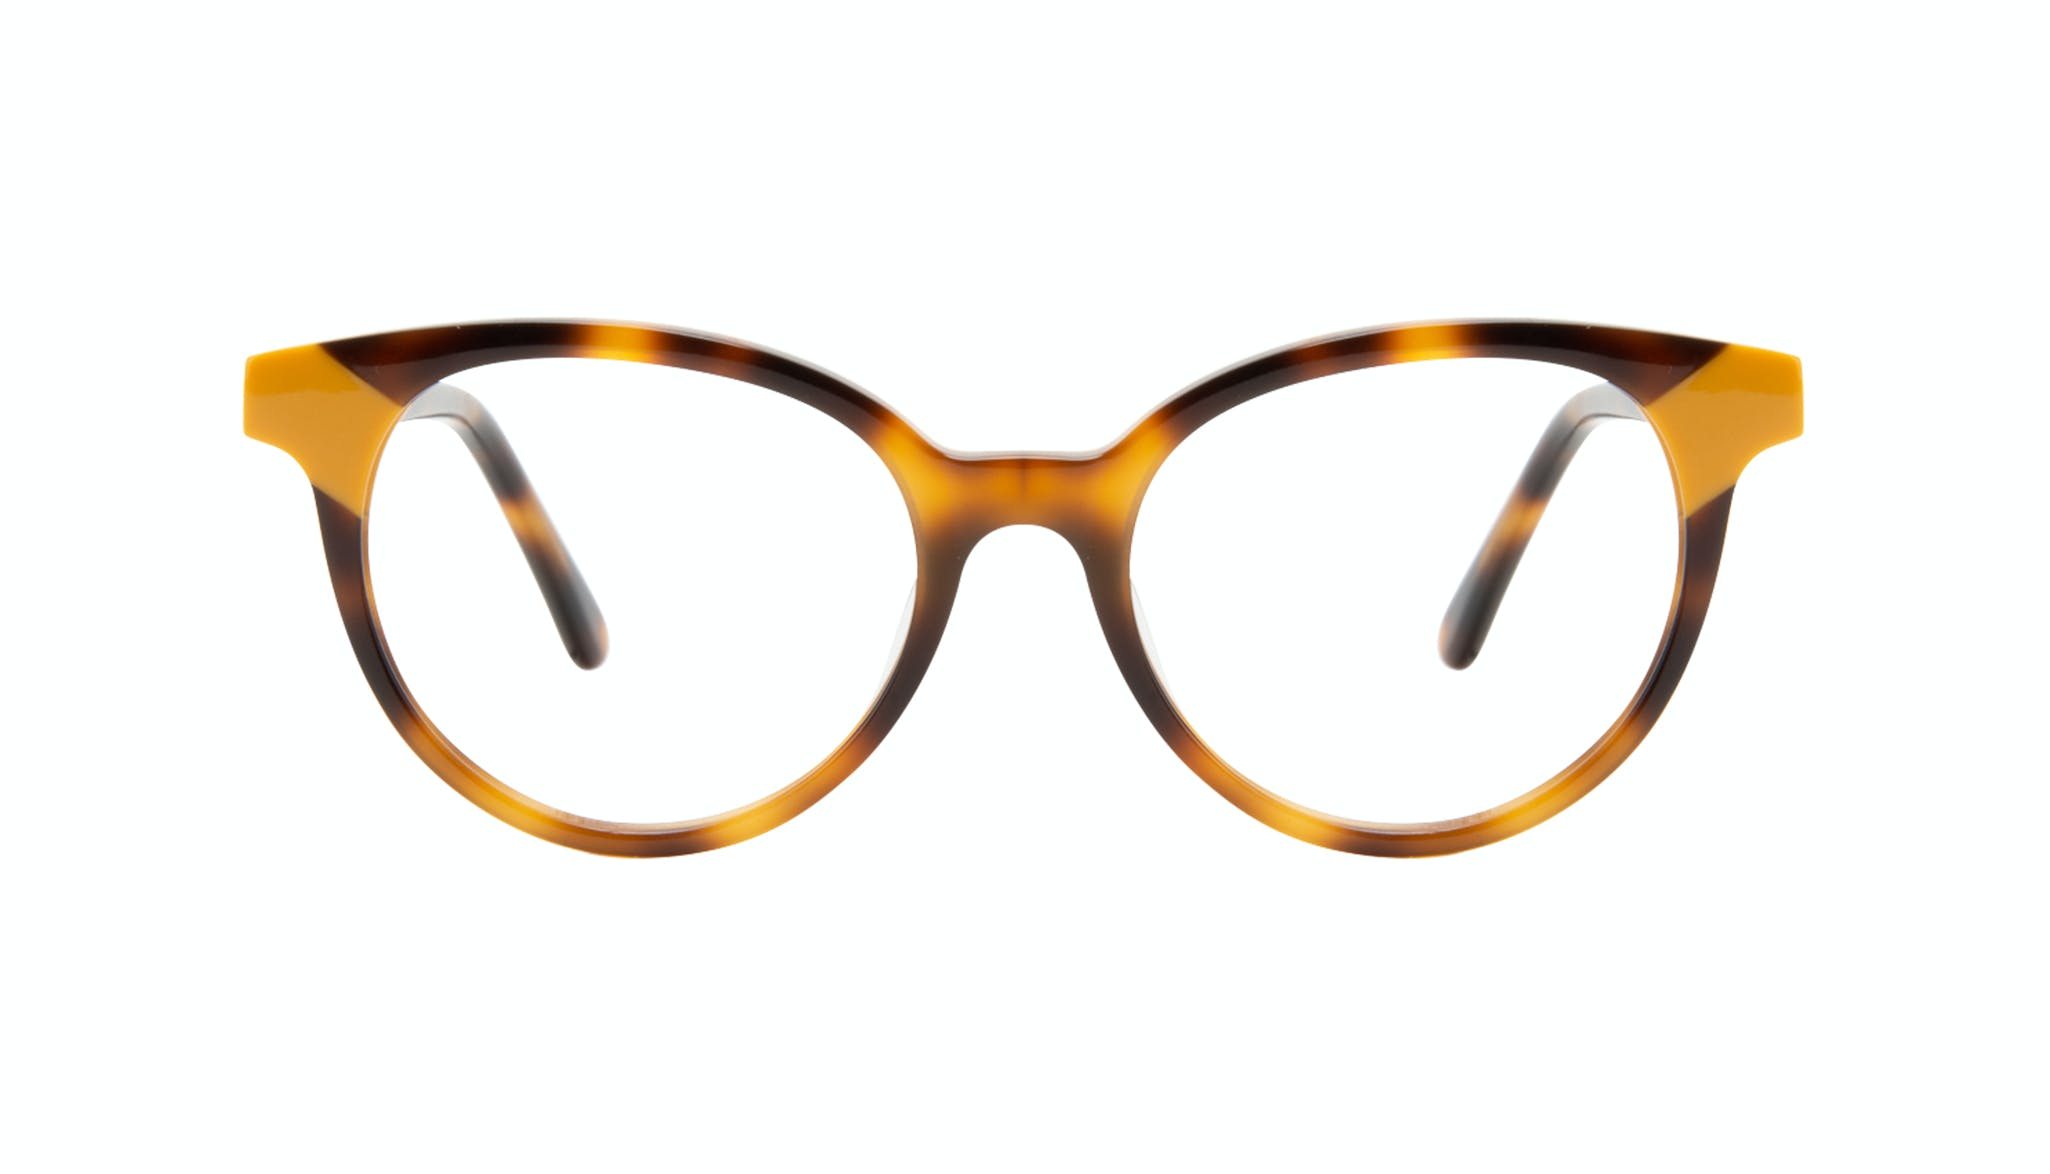 Affordable Fashion Glasses Round Eyeglasses Women Bright Yellow Pop Front